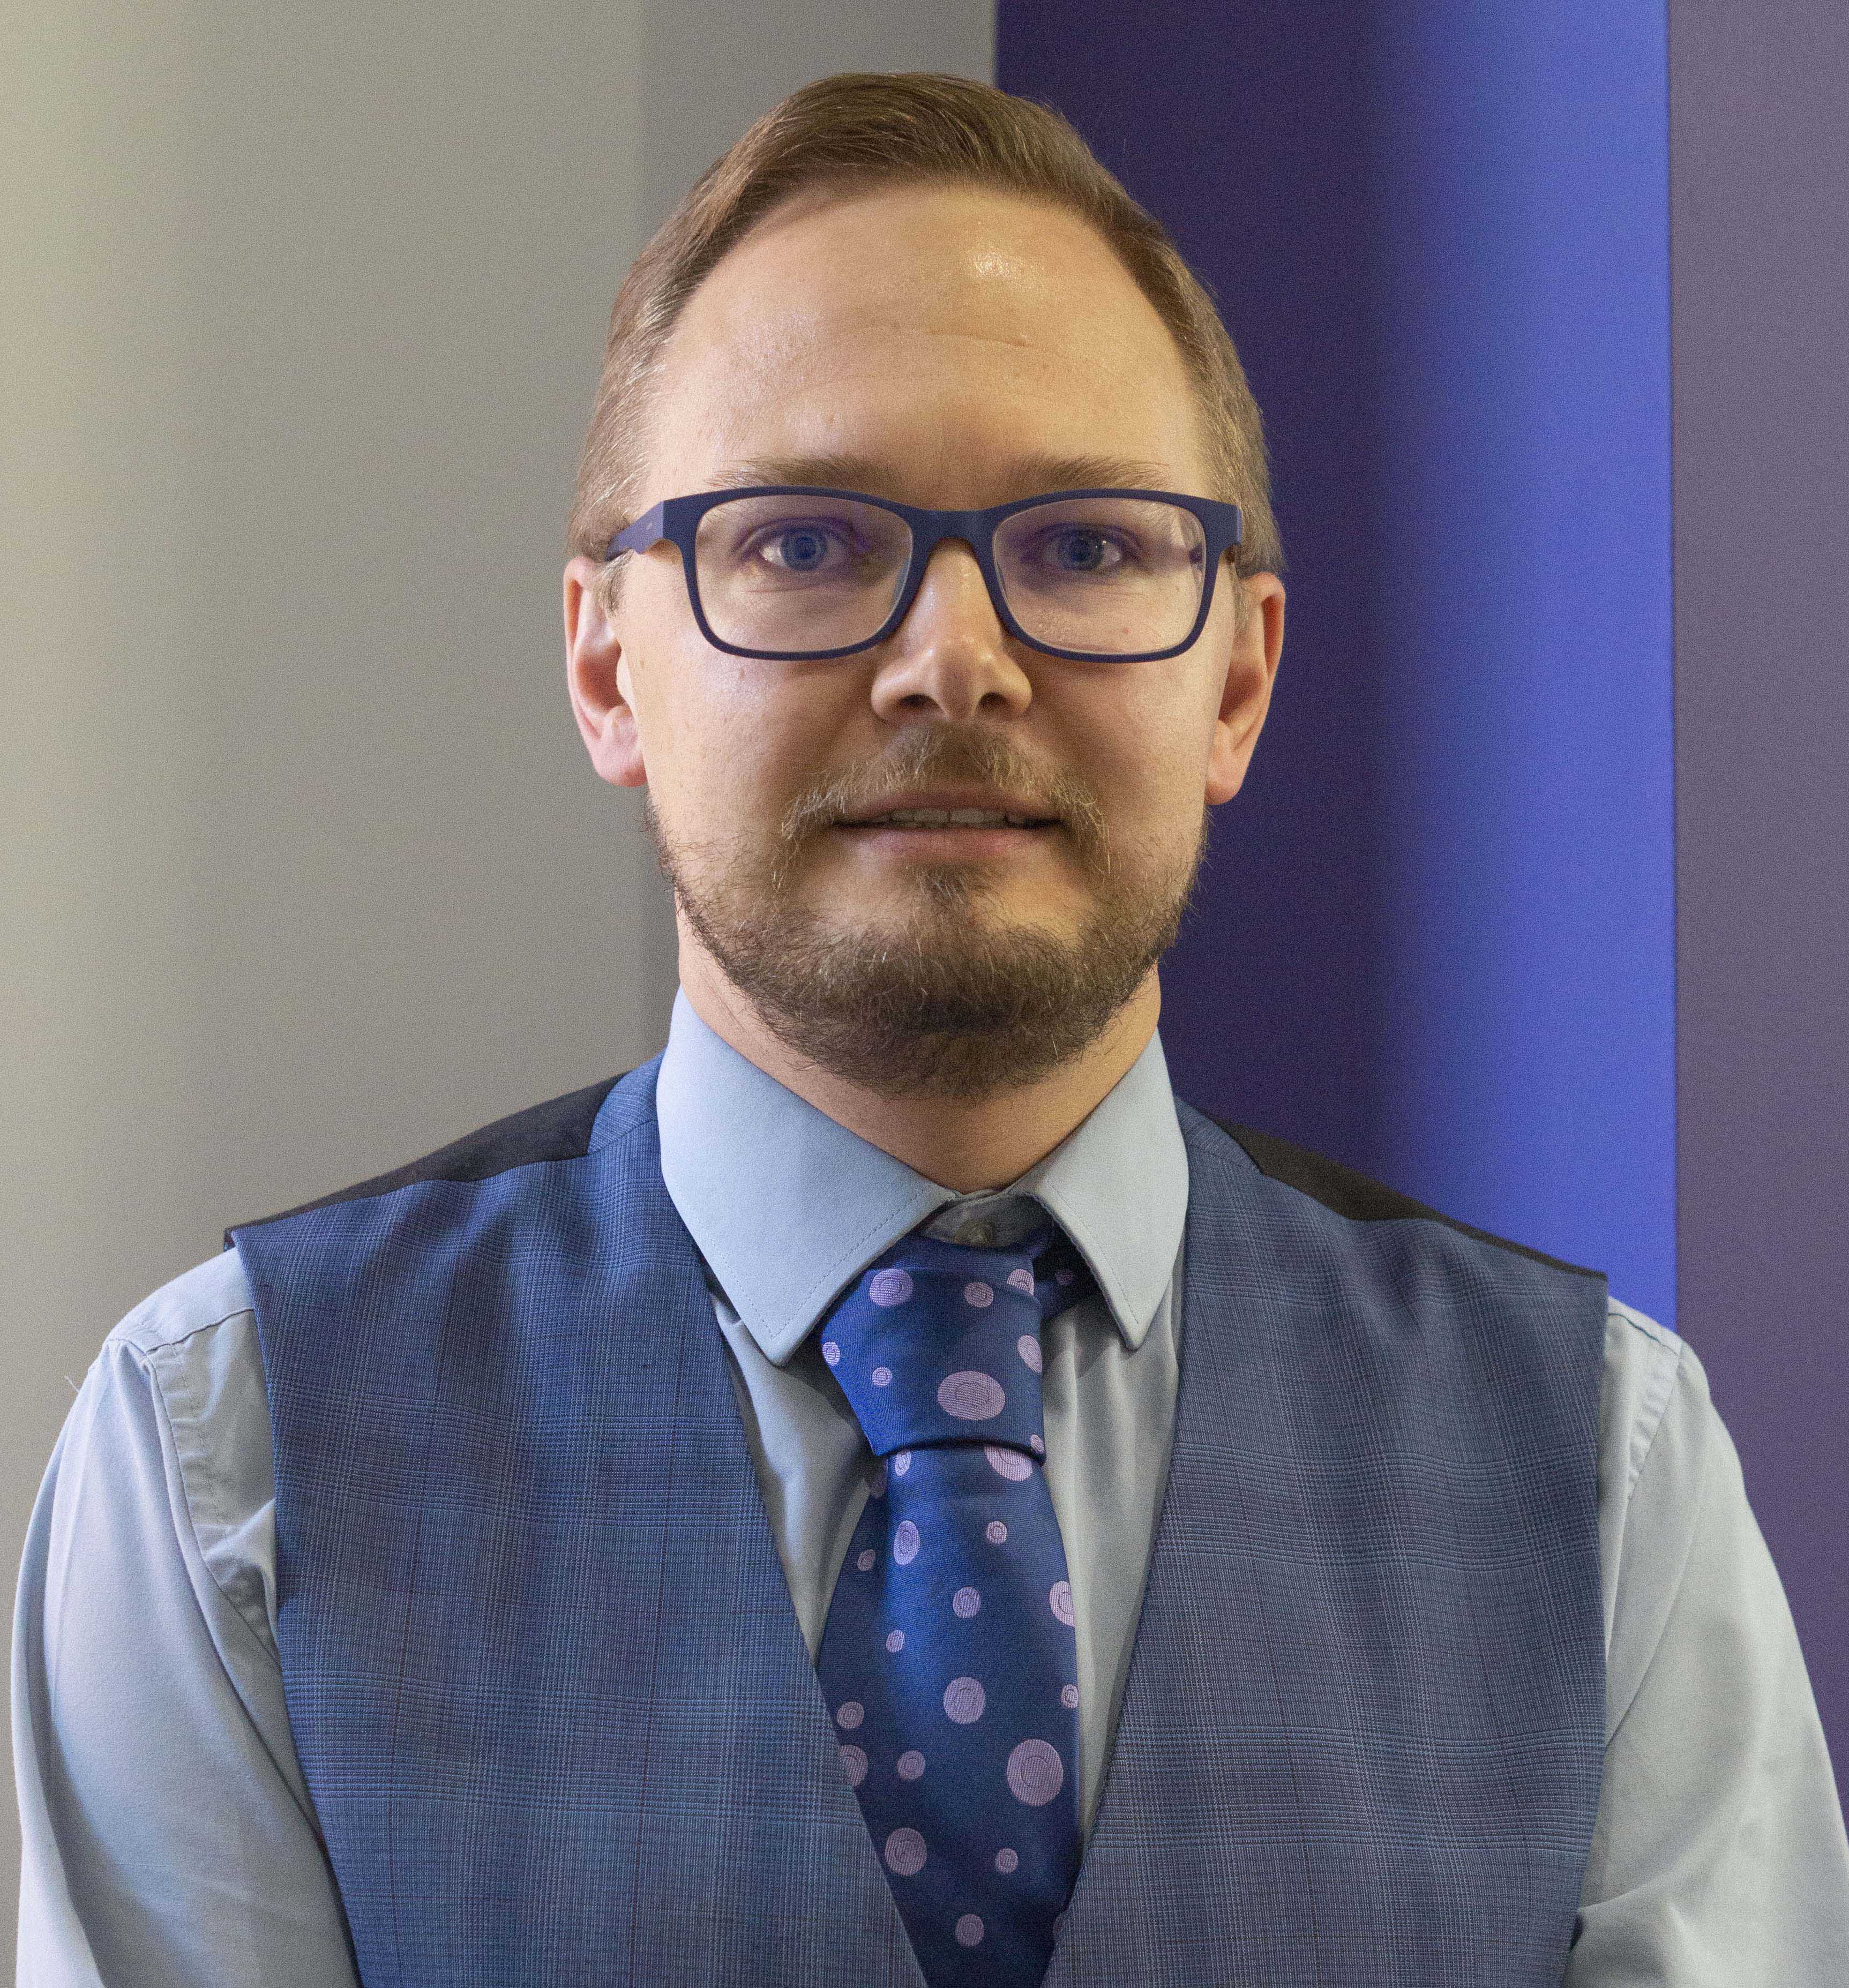 Graeme Booth Residential Property Solicitor Farleys Solicitors